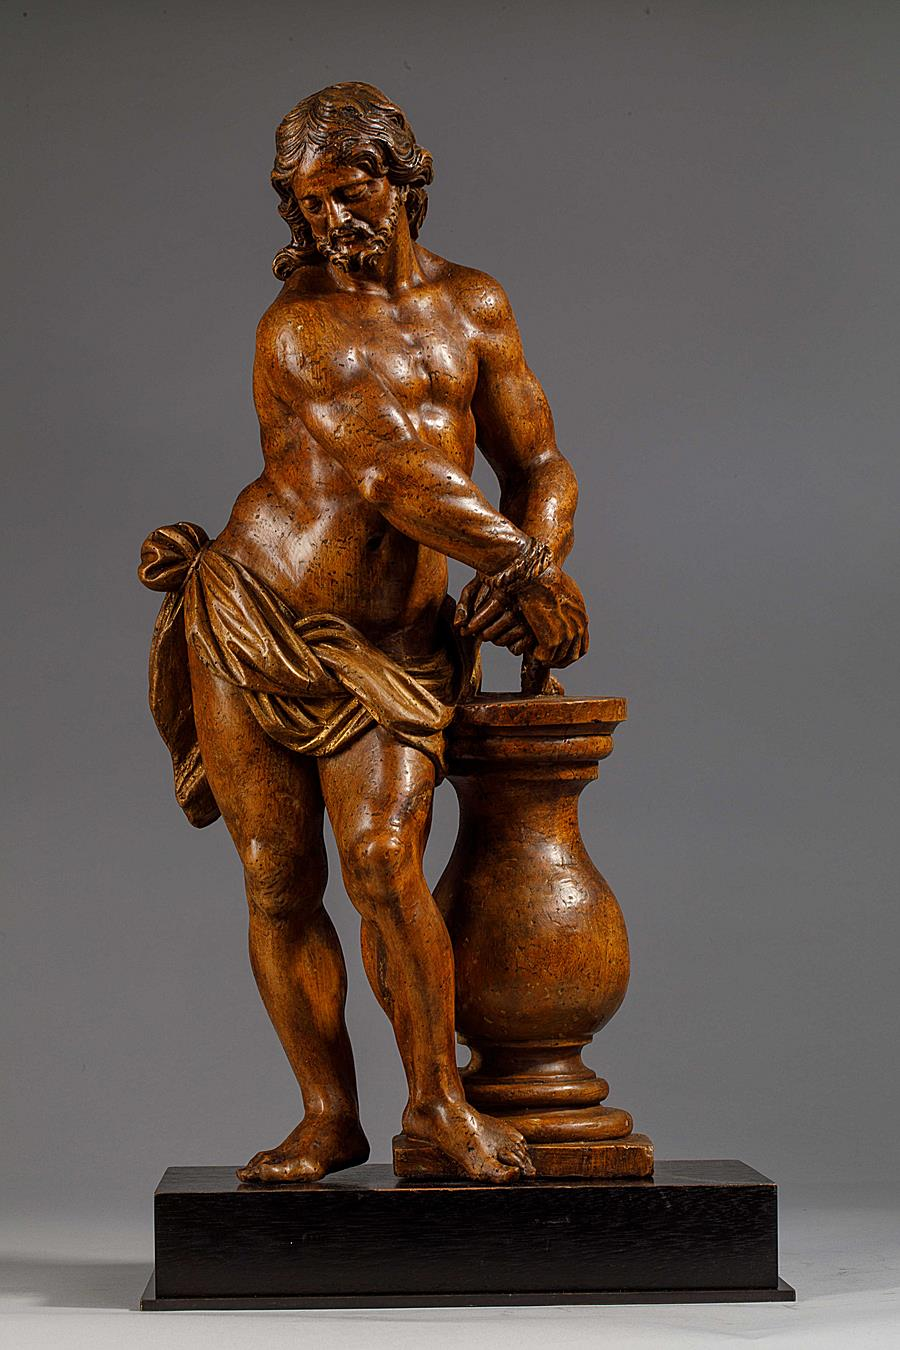 CHRIST AT THE COLUMN NAPLES SECOND HALF OF THE 17TH CENTURY